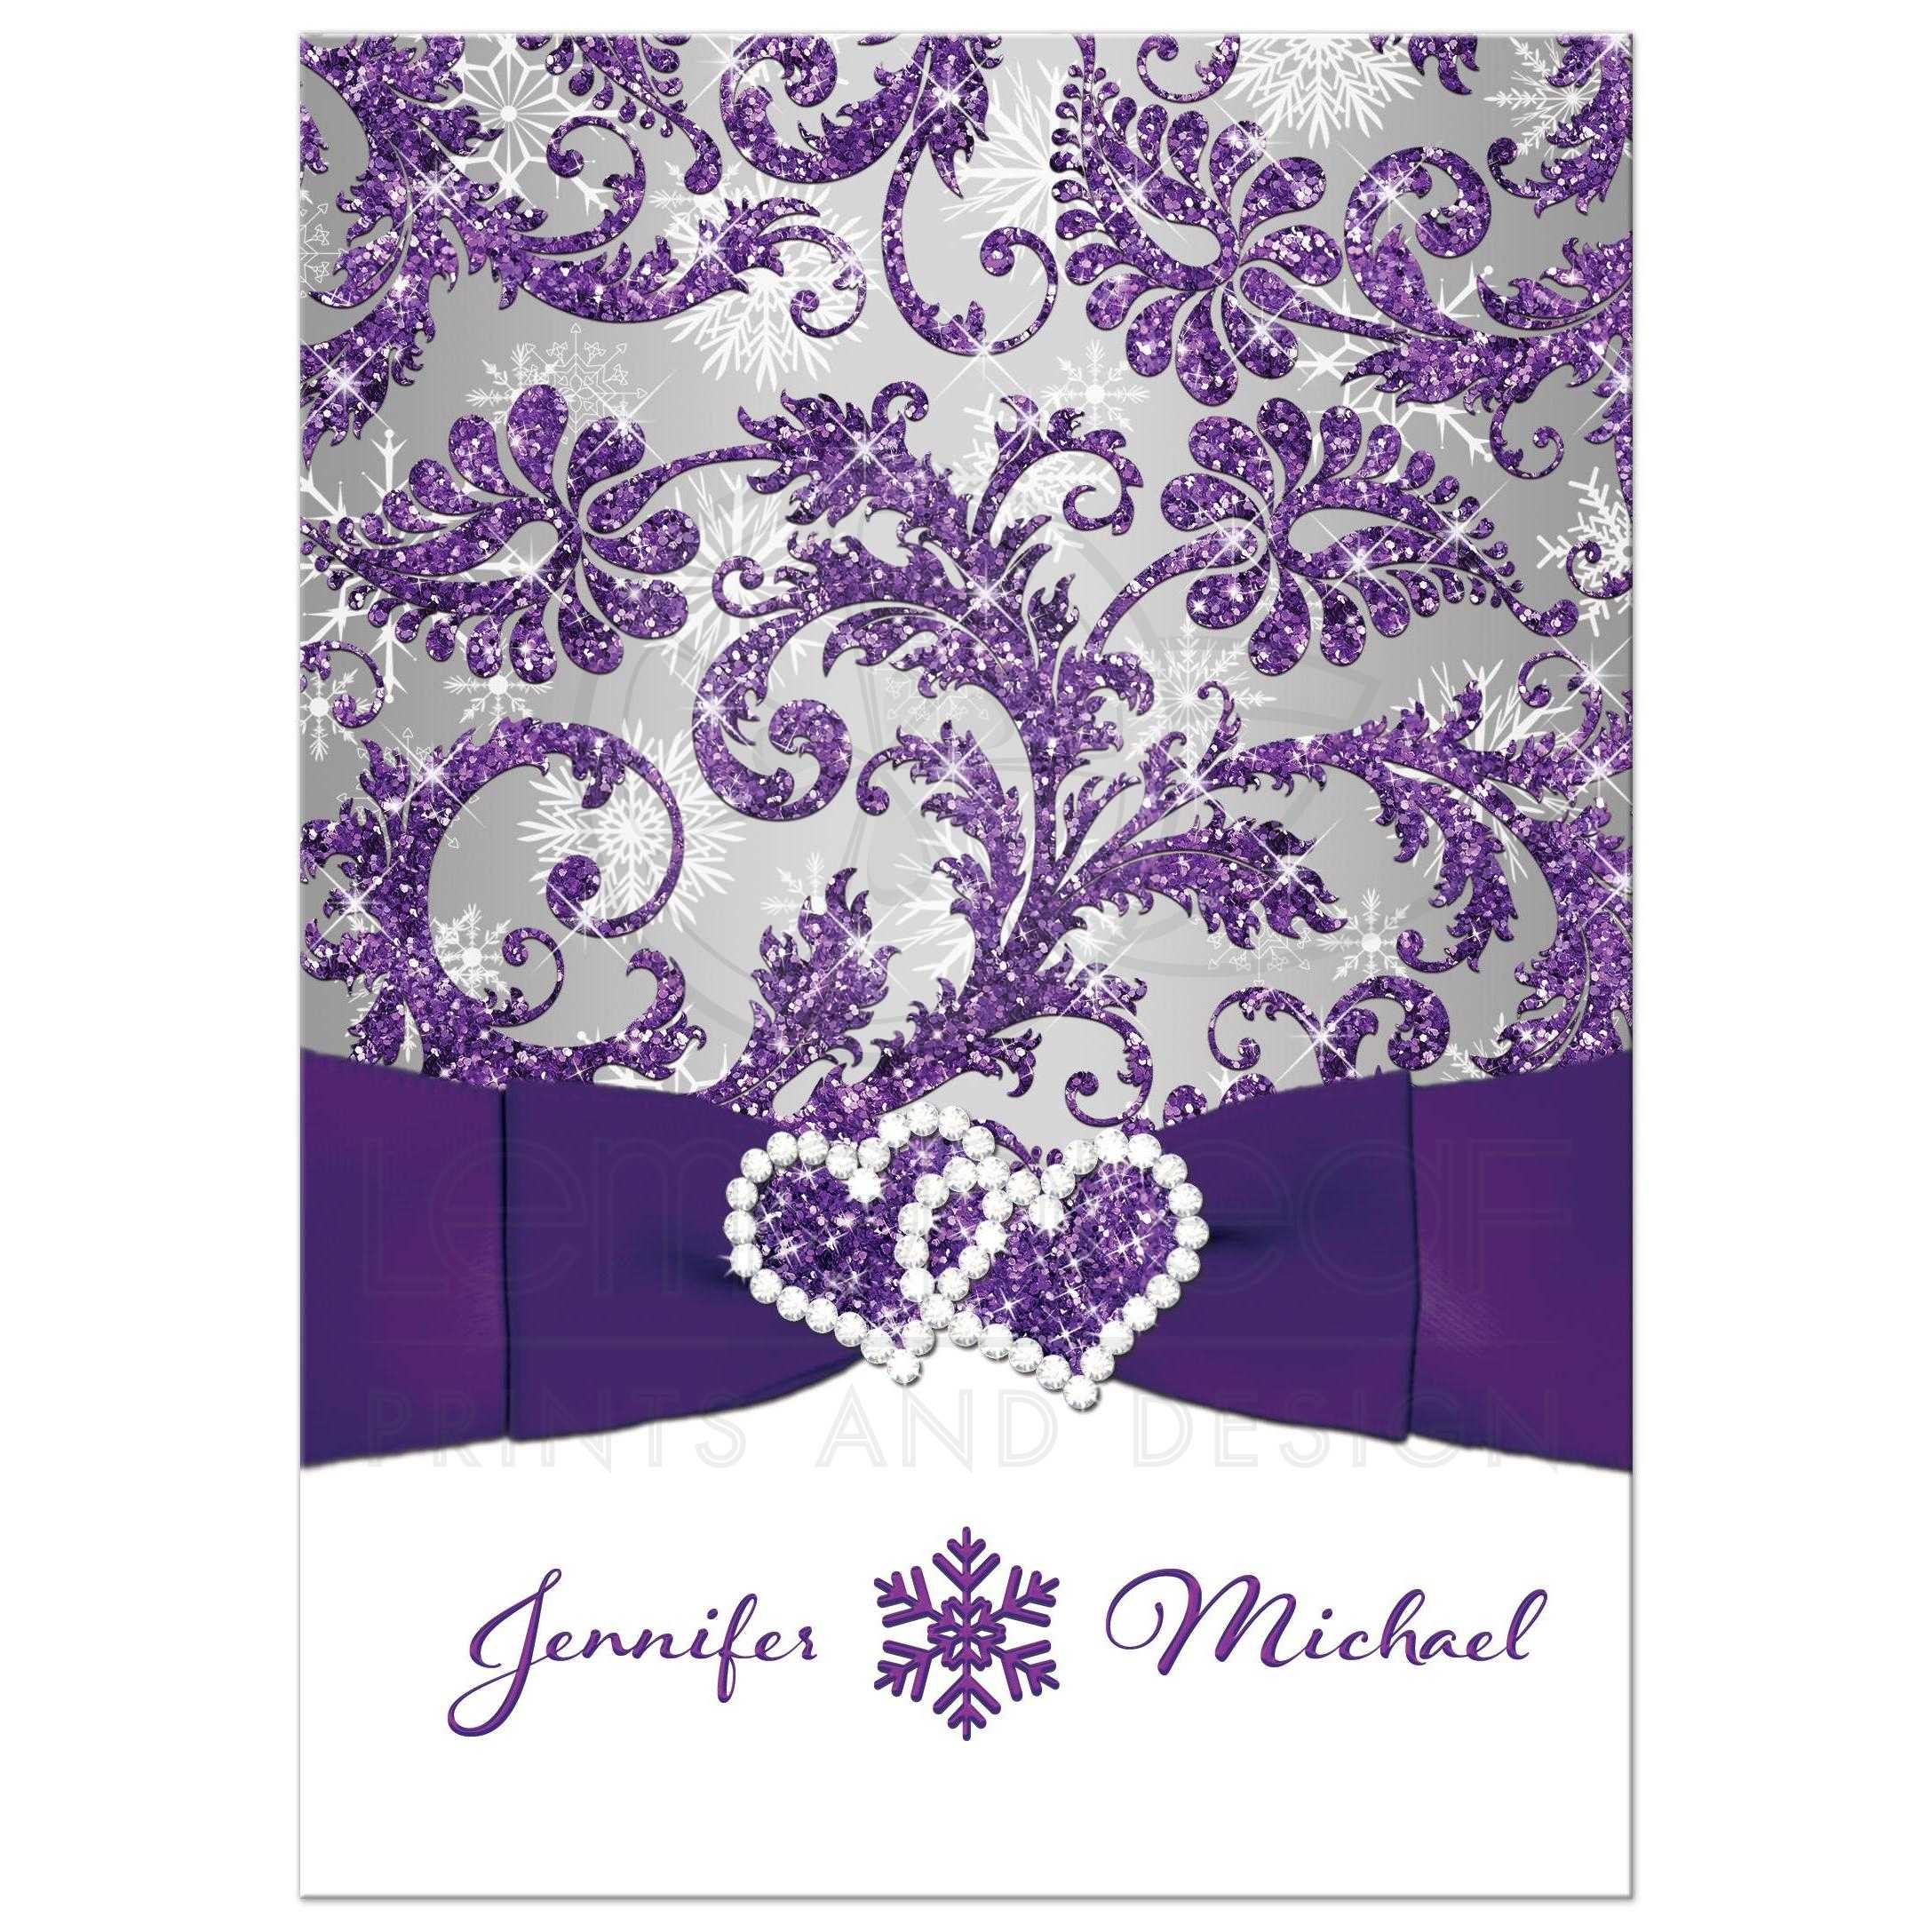 Great Winter Wonderland Wedding Invitation In Ice Purple Silver And White Snowflakes With Ribbon